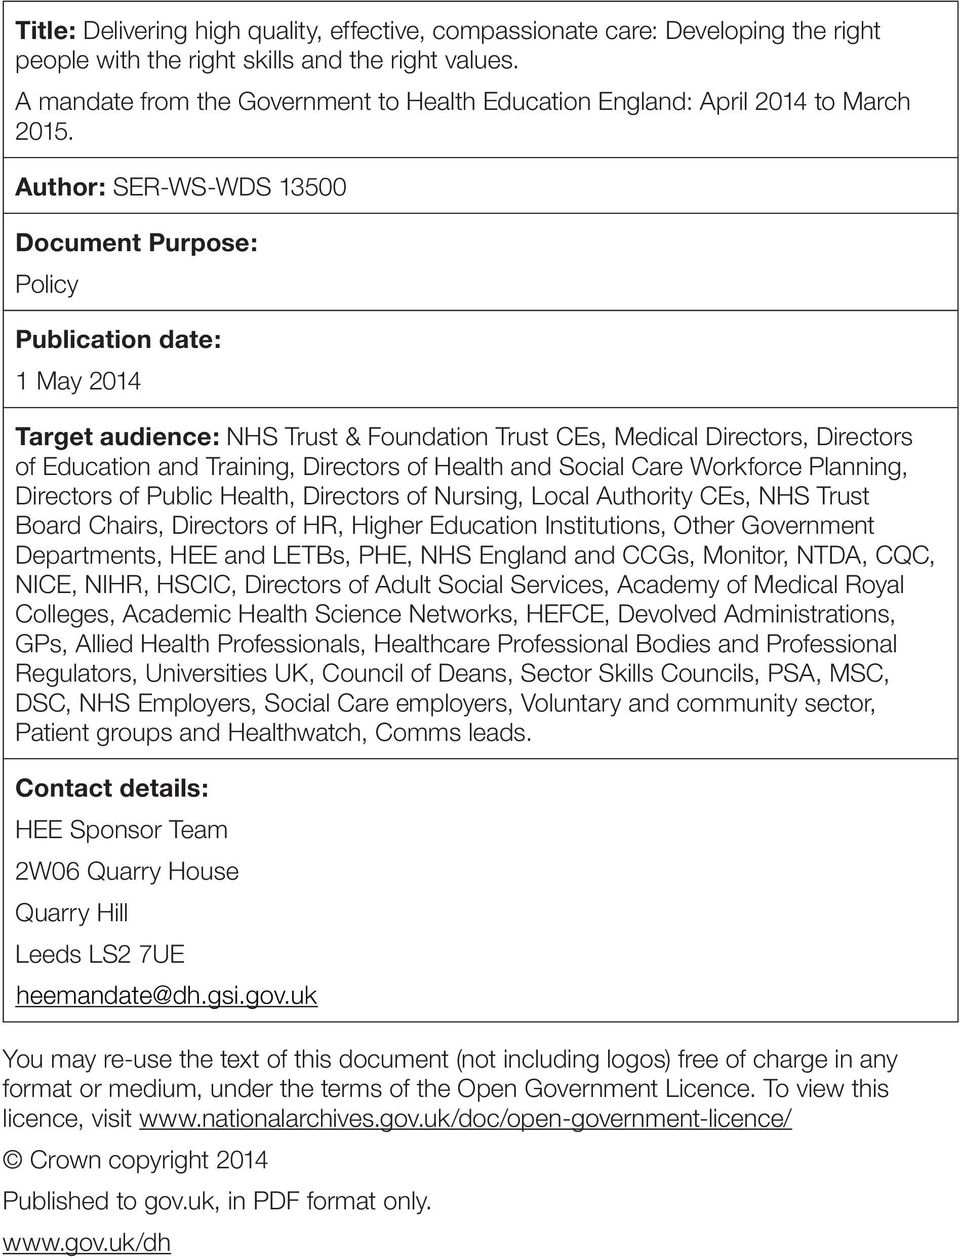 Author: SER-WS-WDS 13500 Document Purpose: Policy Publication date: 1 May 2014 Target audience: NHS Trust & Foundation Trust CEs, Medical Directors, Directors of Education and Training, Directors of